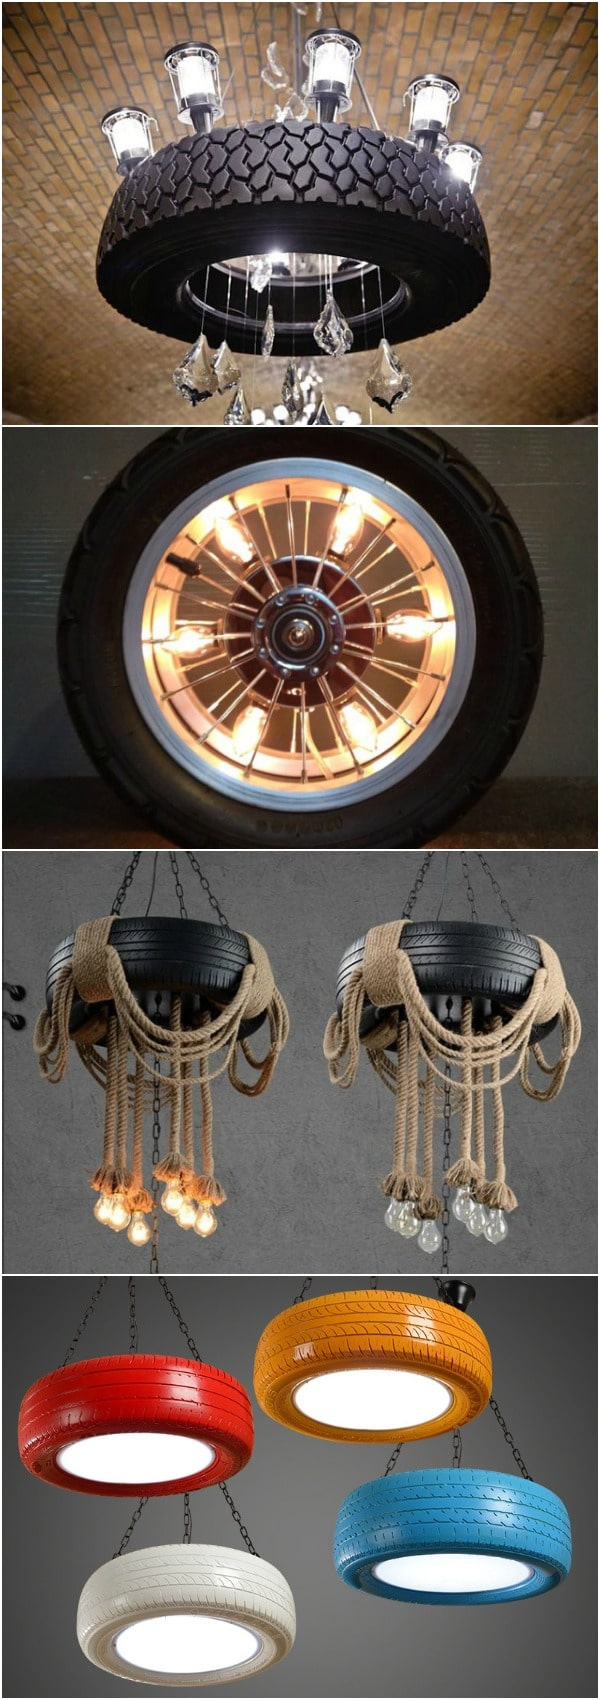 10 Amazing Lamps Selection from DIY Tire Projects - pendant-lighting